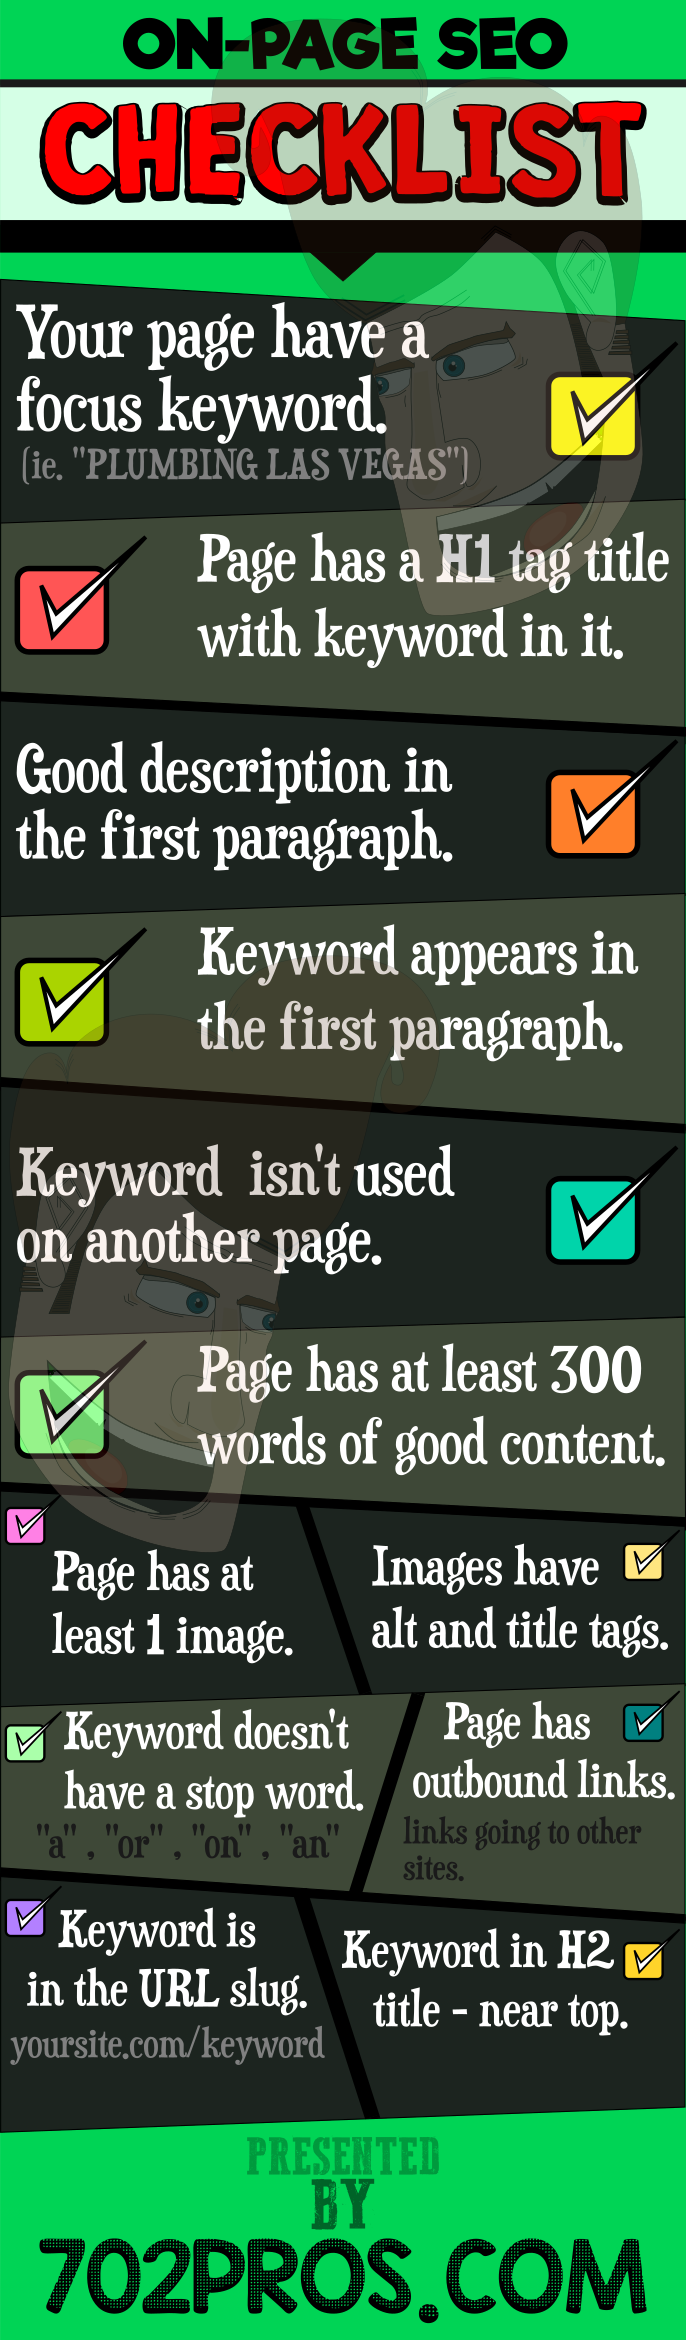 on page seo checklist infographic